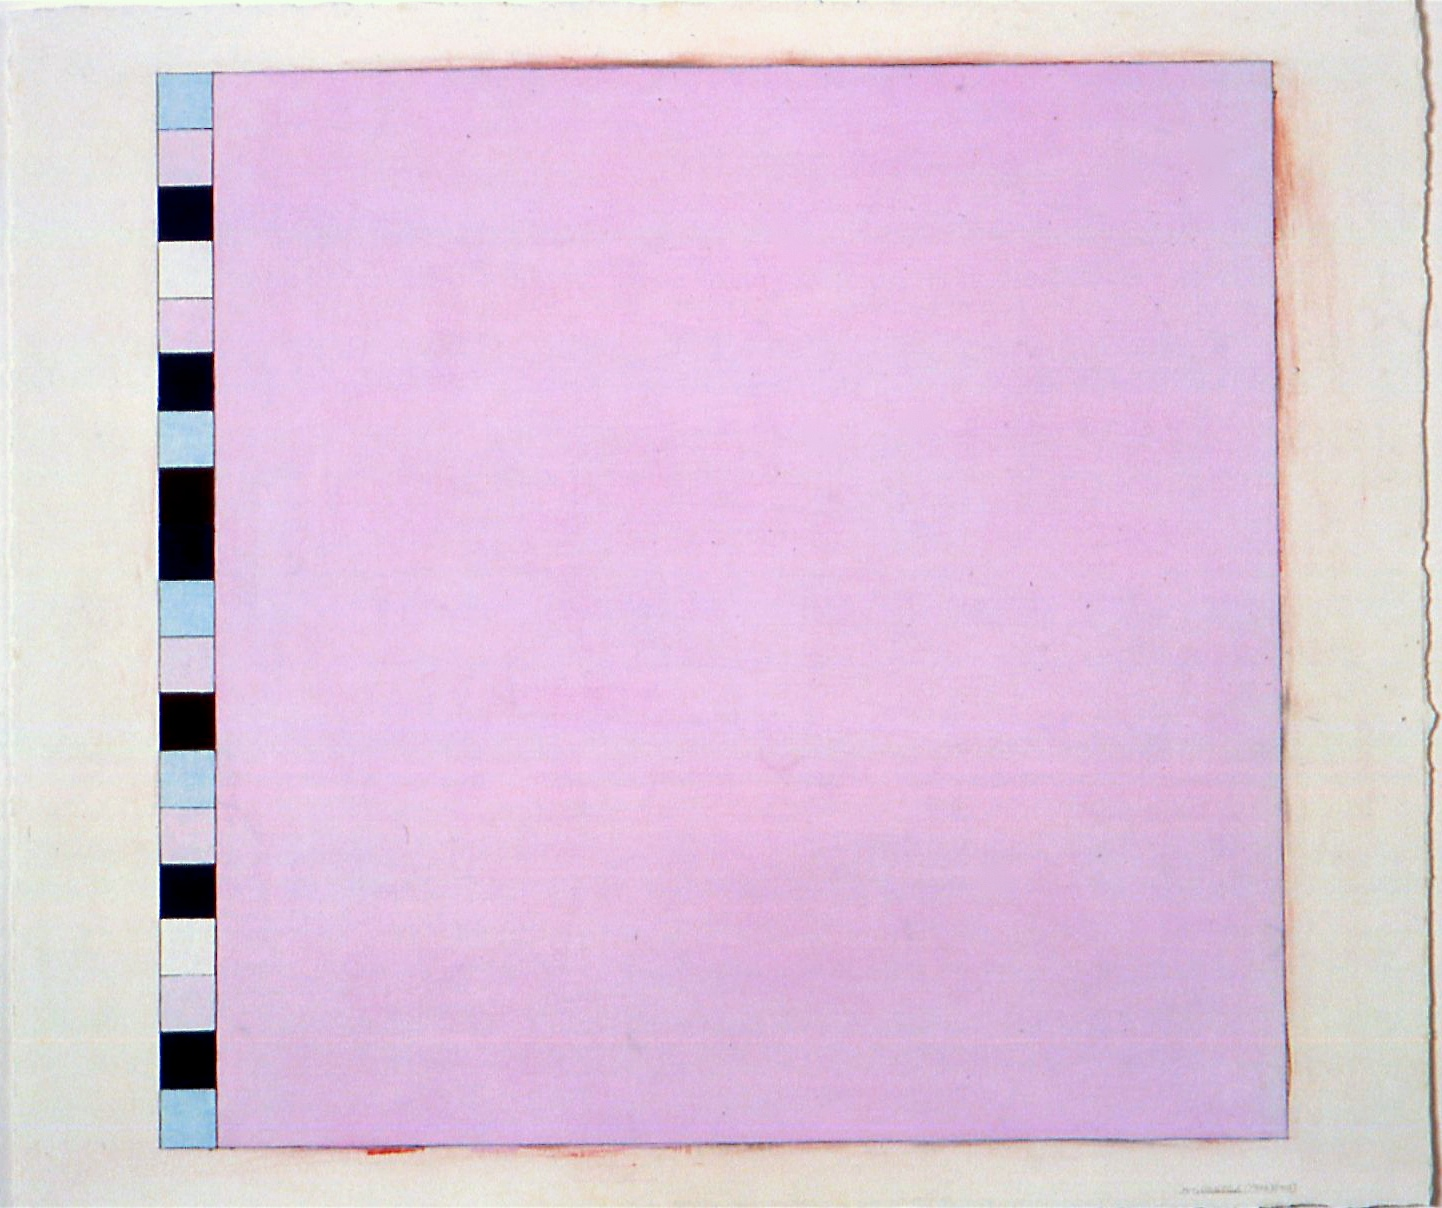 """Untitled (PG2), 2002, gouache on paper, 20 3/16""""x21 3/8""""(image), 22 3/4""""x26 3/8"""" (paper)"""